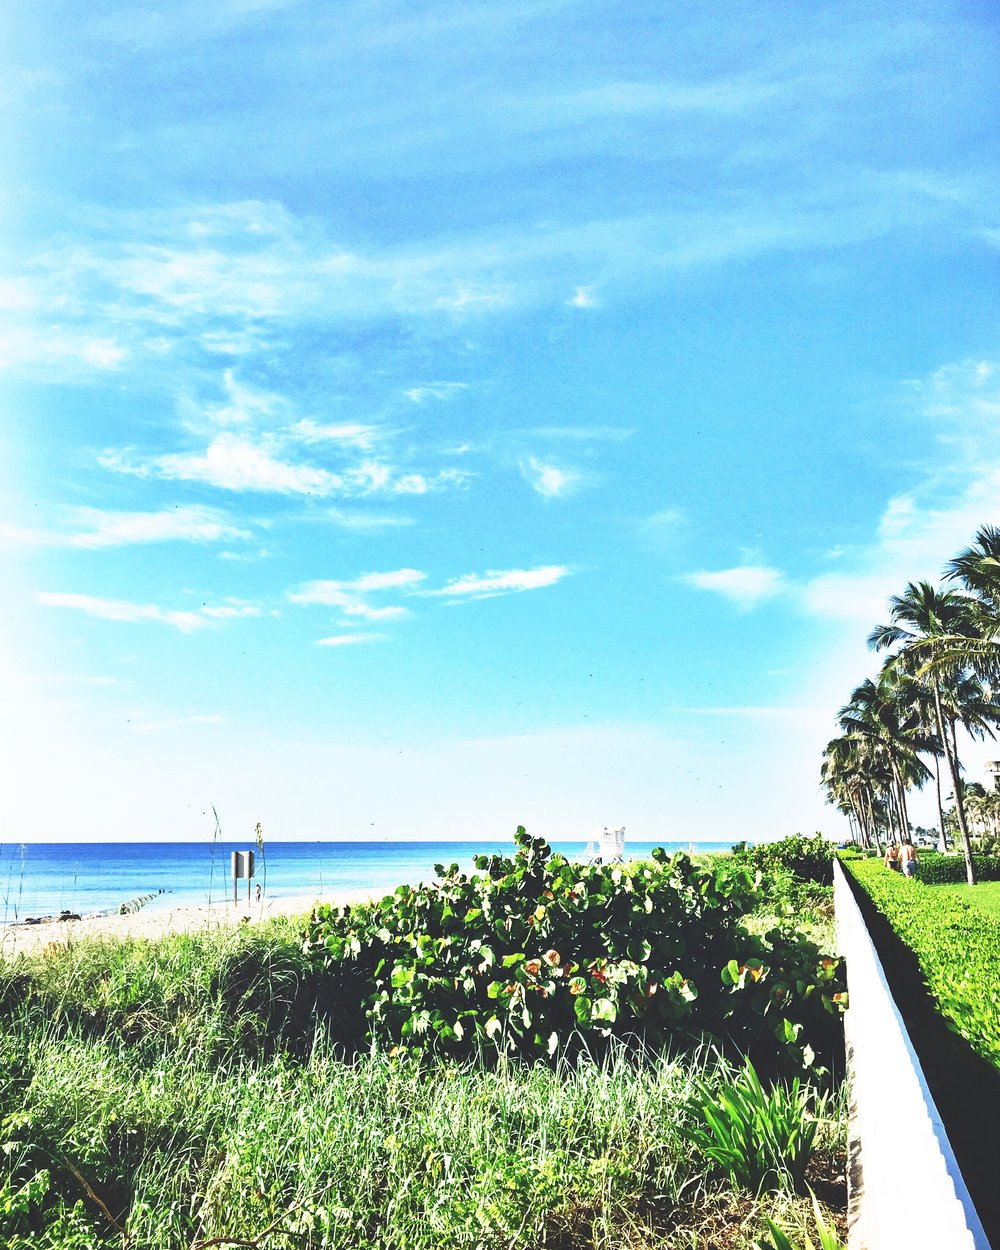 The beach is the perfect place to end up after a walk, jog, or longboard ride.